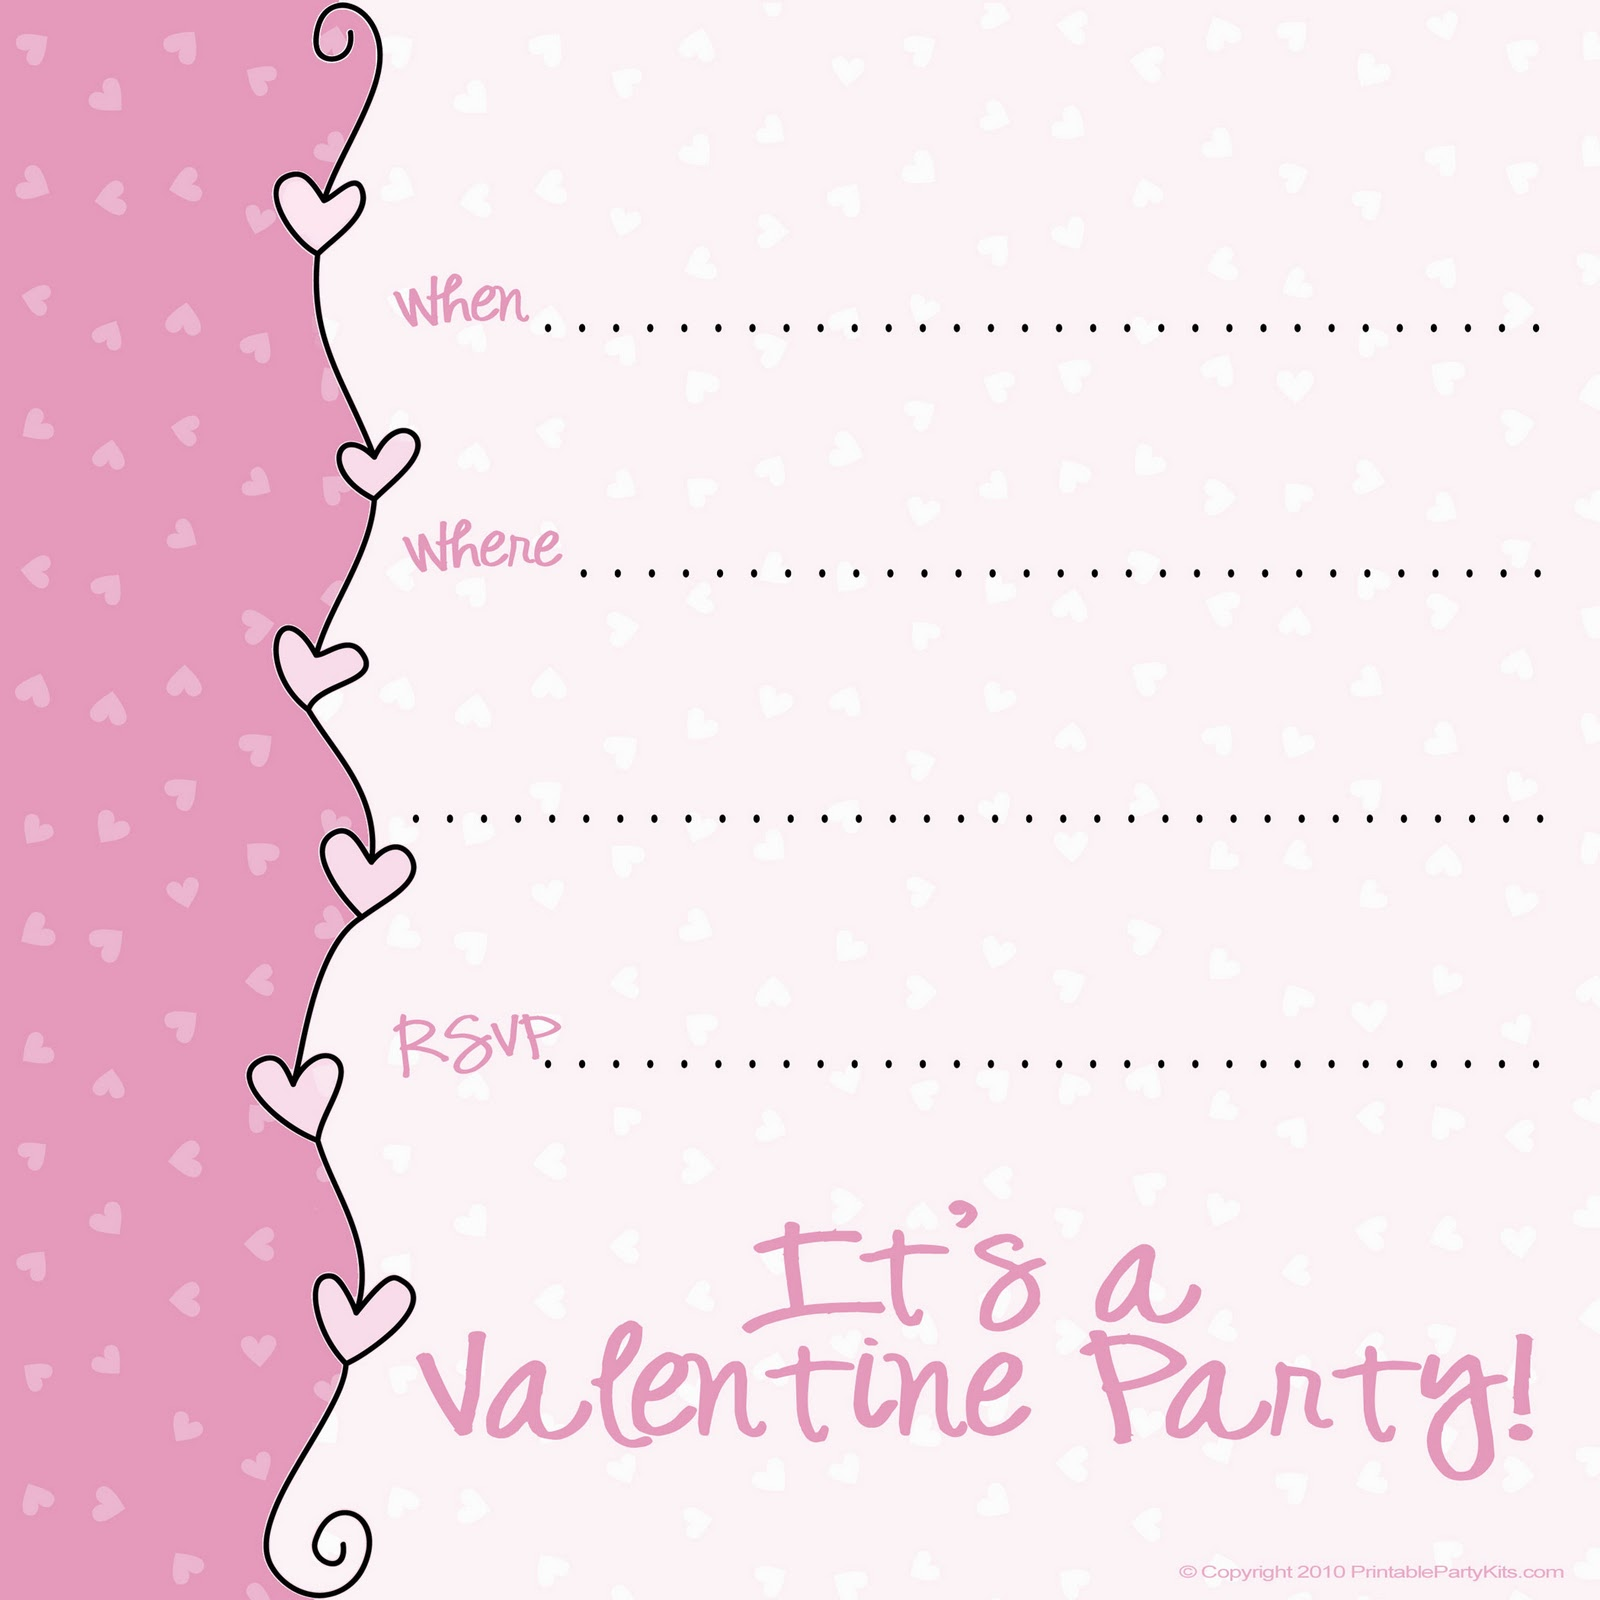 10 Images of Valentine's Banquet Invitations Printable